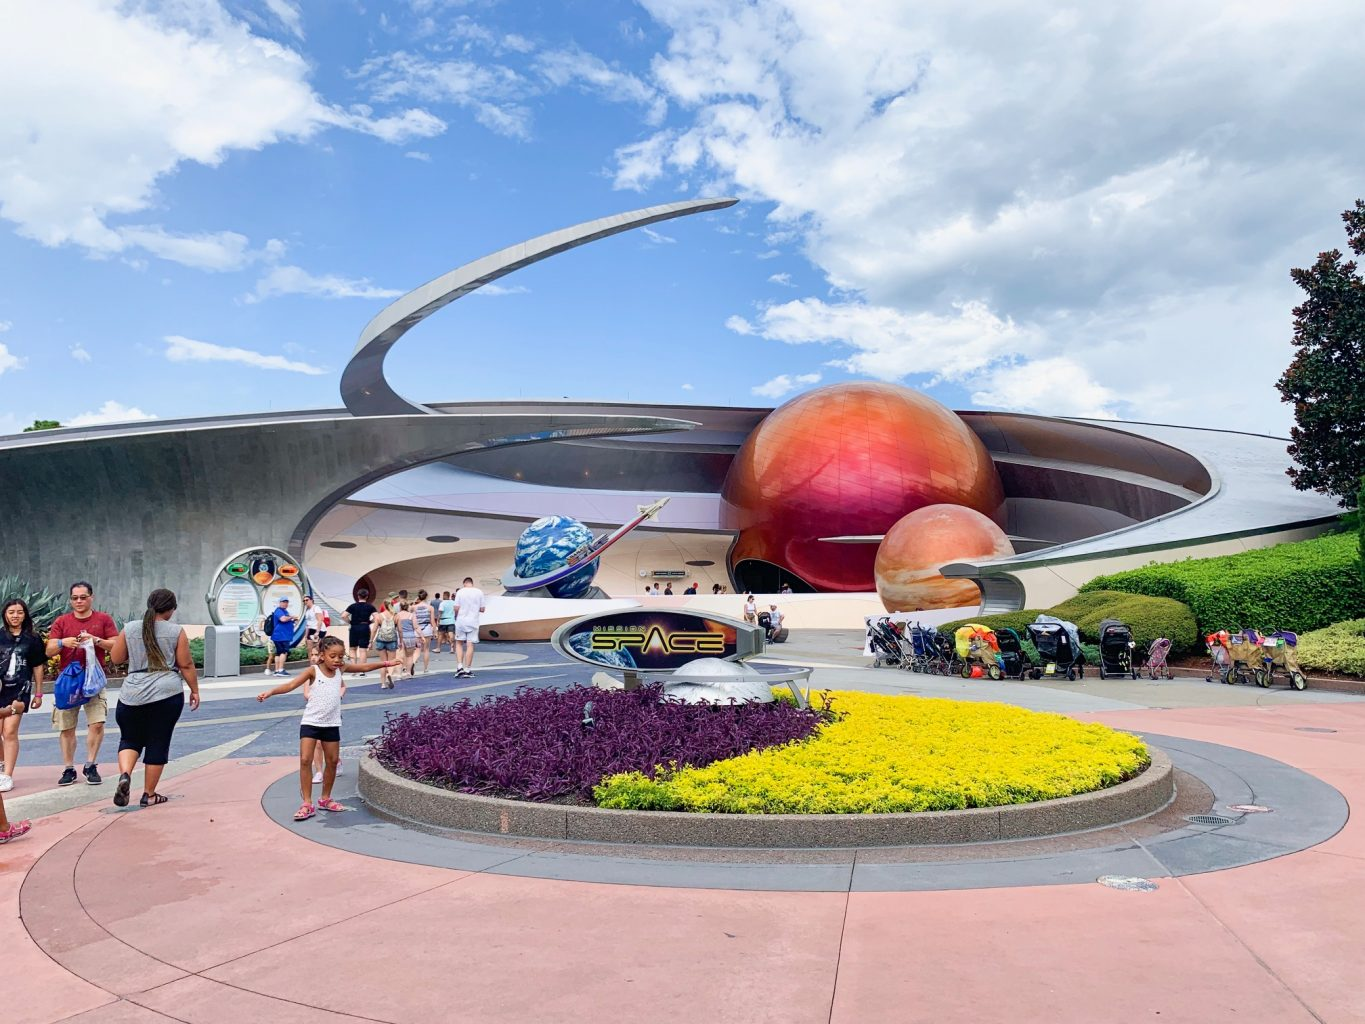 Mission space ride at Epcot